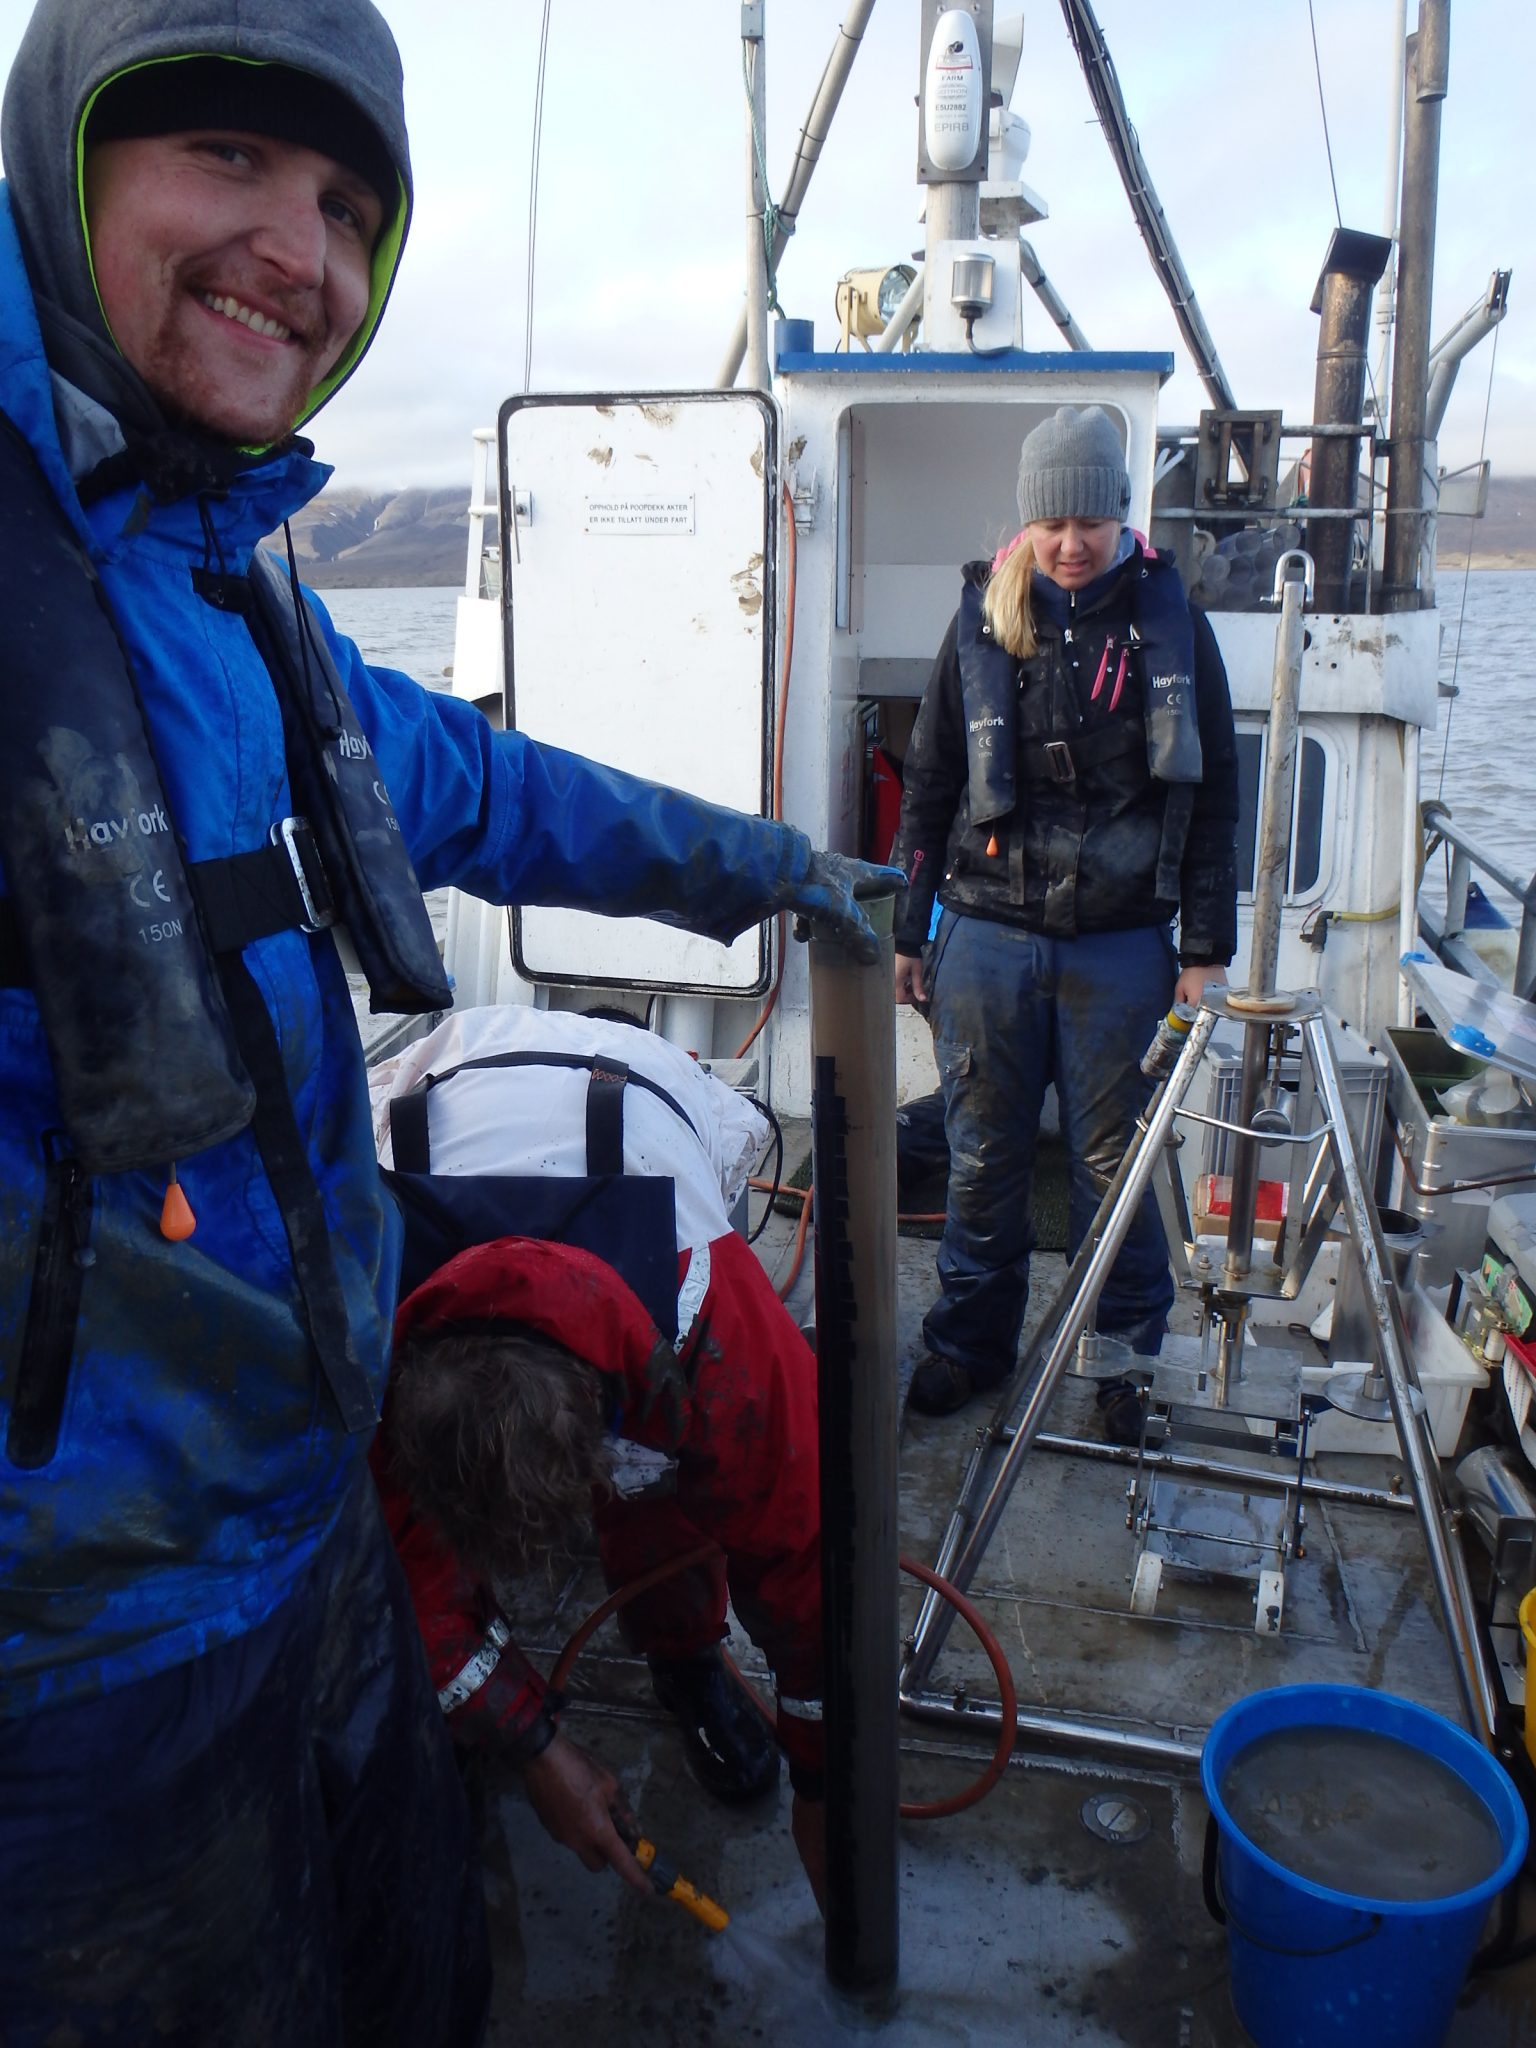 Claus Pelikan happy with his catch of Svalbard sediment | Research Group Loy | APRI